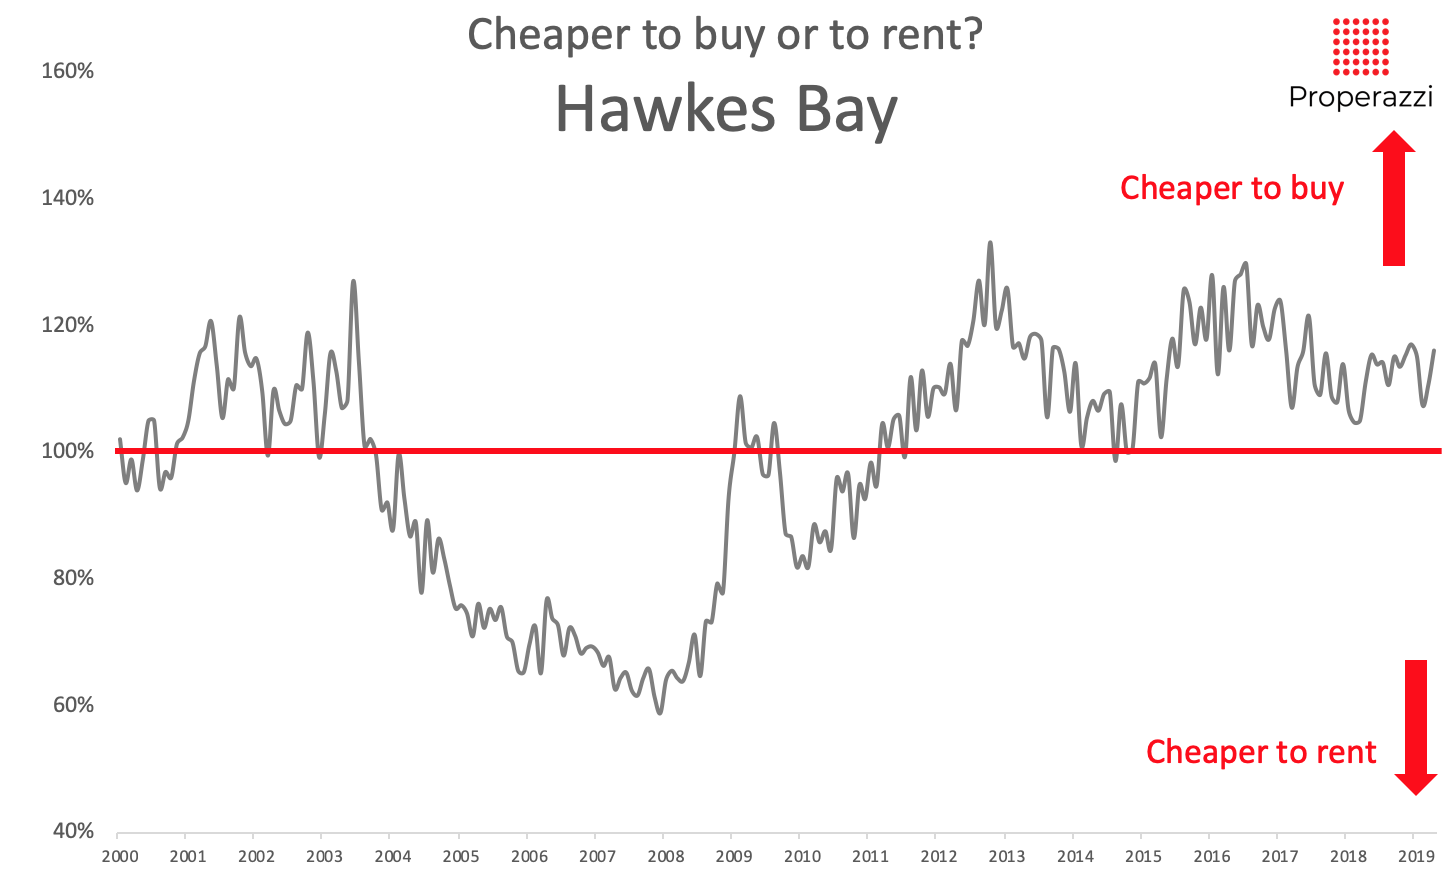 To rent or to buy - Hawkes Bay May 2019